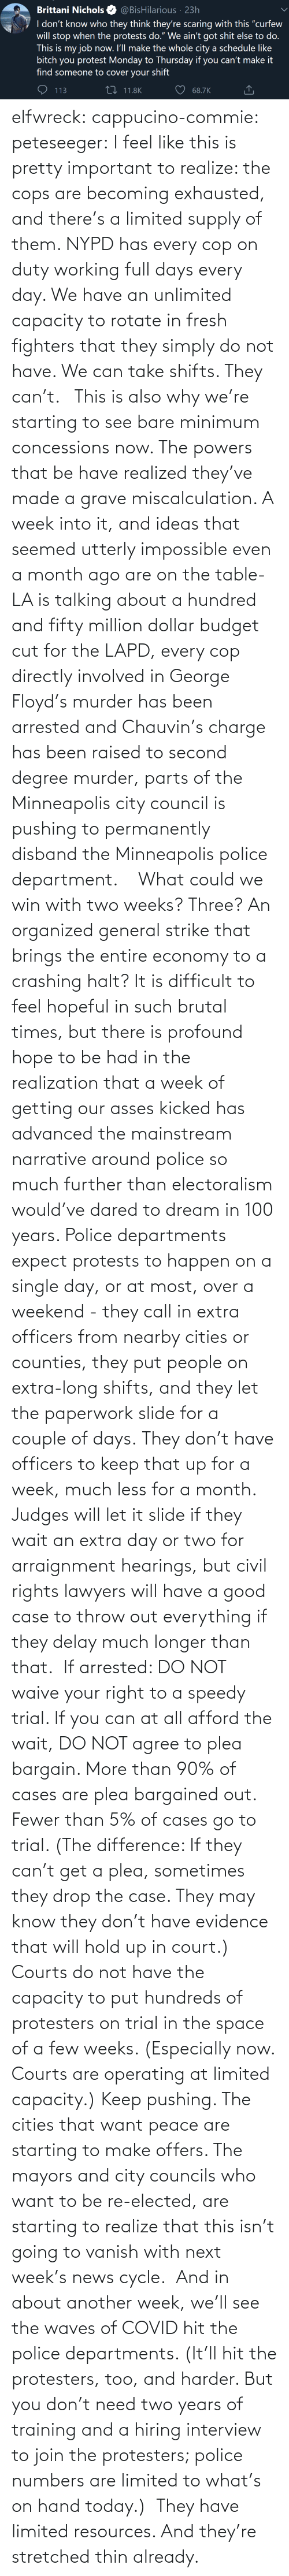 court: elfwreck:  cappucino-commie:  peteseeger: I feel like this is pretty important to realize: the cops are becoming exhausted, and there's a limited supply of them. NYPD has every cop on duty working full days every day. We have an unlimited capacity to rotate in fresh fighters that they simply do not have. We can take shifts. They can't.   This is also why we're starting to see bare minimum concessions now. The powers that be have realized they've made a grave miscalculation. A week into it, and ideas that seemed utterly impossible even a month ago are on the table- LA is talking about a hundred and fifty million dollar budget cut for the LAPD, every cop directly involved in George Floyd's murder has been arrested and Chauvin's charge has been raised to second degree murder, parts of the Minneapolis city council is pushing to permanently disband the Minneapolis police department.  What could we win with two weeks? Three? An organized general strike that brings the entire economy to a crashing halt? It is difficult to feel hopeful in such brutal times, but there is profound hope to be had in the realization that a week of getting our asses kicked has advanced the mainstream narrative around police so much further than electoralism would've dared to dream in 100 years.   Police departments expect protests to happen on a single day, or at most, over a weekend - they call in extra officers from nearby cities or counties, they put people on extra-long shifts, and they let the paperwork slide for a couple of days. They don't have officers to keep that up for a week, much less for a month. Judges will let it slide if they wait an extra day or two for arraignment hearings, but civil rights lawyers will have a good case to throw out everything if they delay much longer than that. If arrested: DO NOT waive your right to a speedy trial. If you can at all afford the wait, DO NOT agree to plea bargain. More than 90% of cases are plea bargained out. Fewer than 5% of cases go